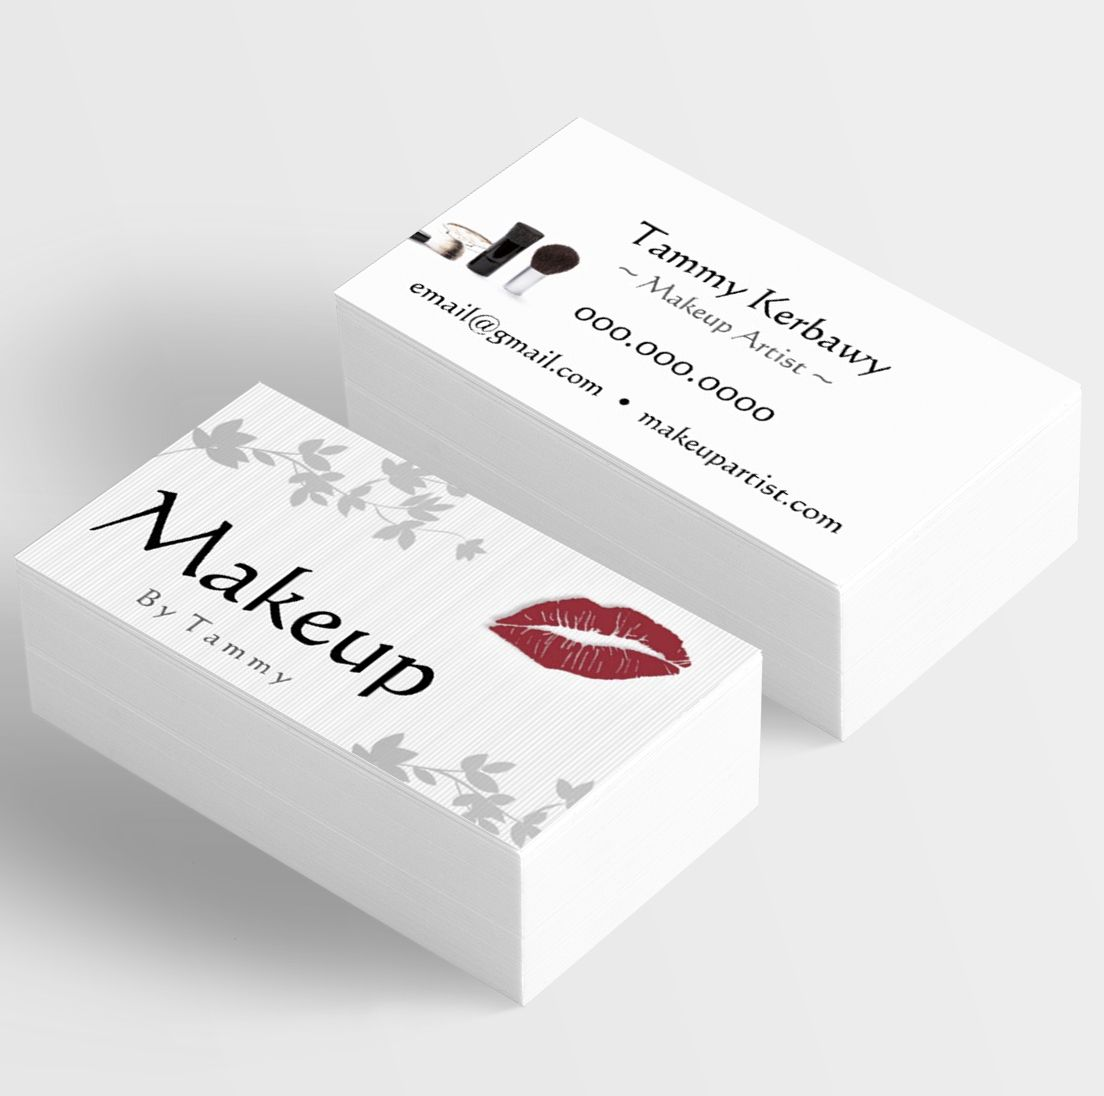 Makeup artist business card template kindly visit itwvisions makeup artist business card template kindly visit itwvisions or email tammyitwvisions mua makeupartist younique youniquepresenter makeup cheaphphosting